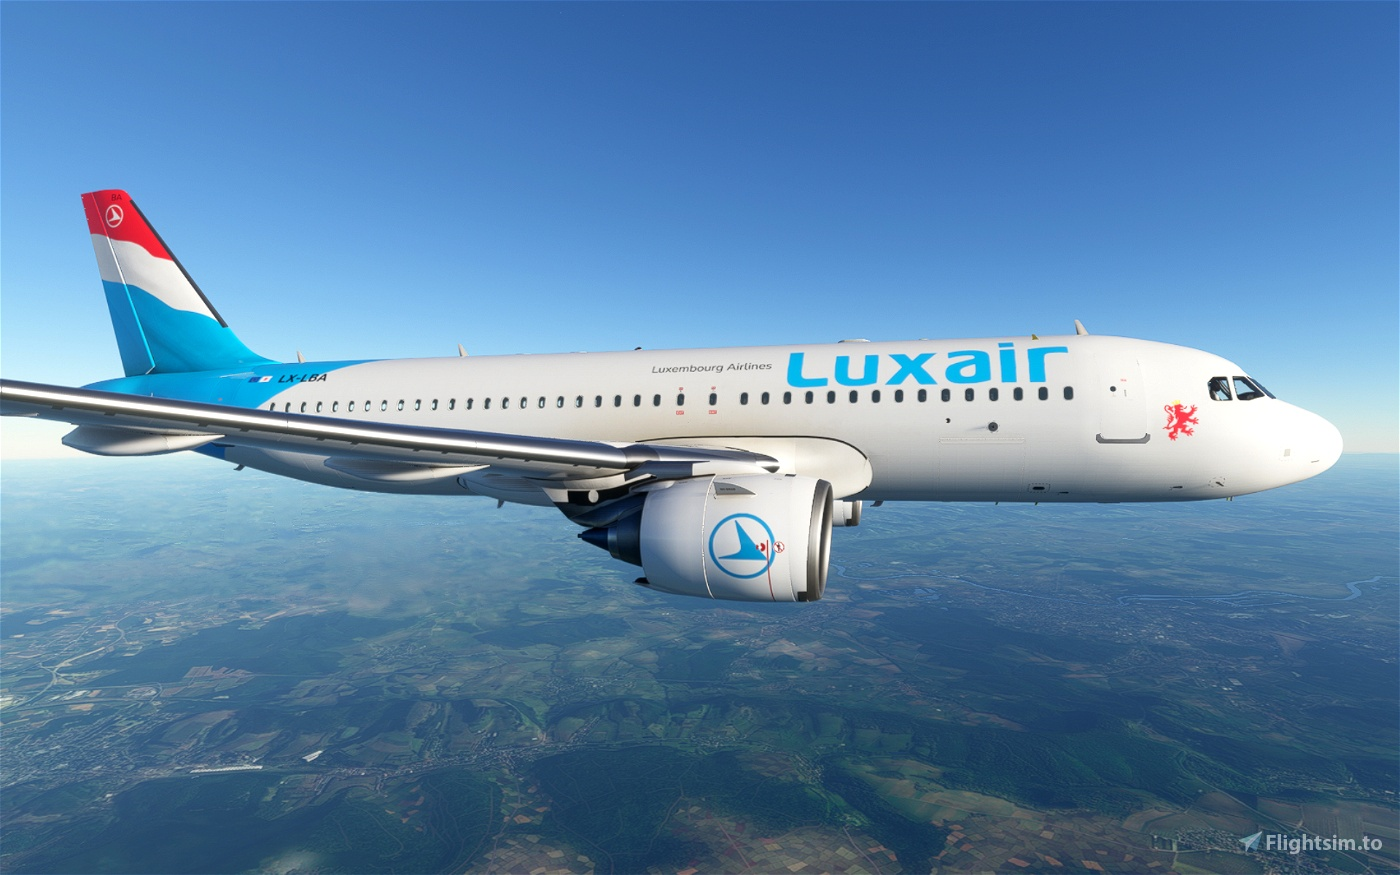 Luxair Flight Simulator 2020